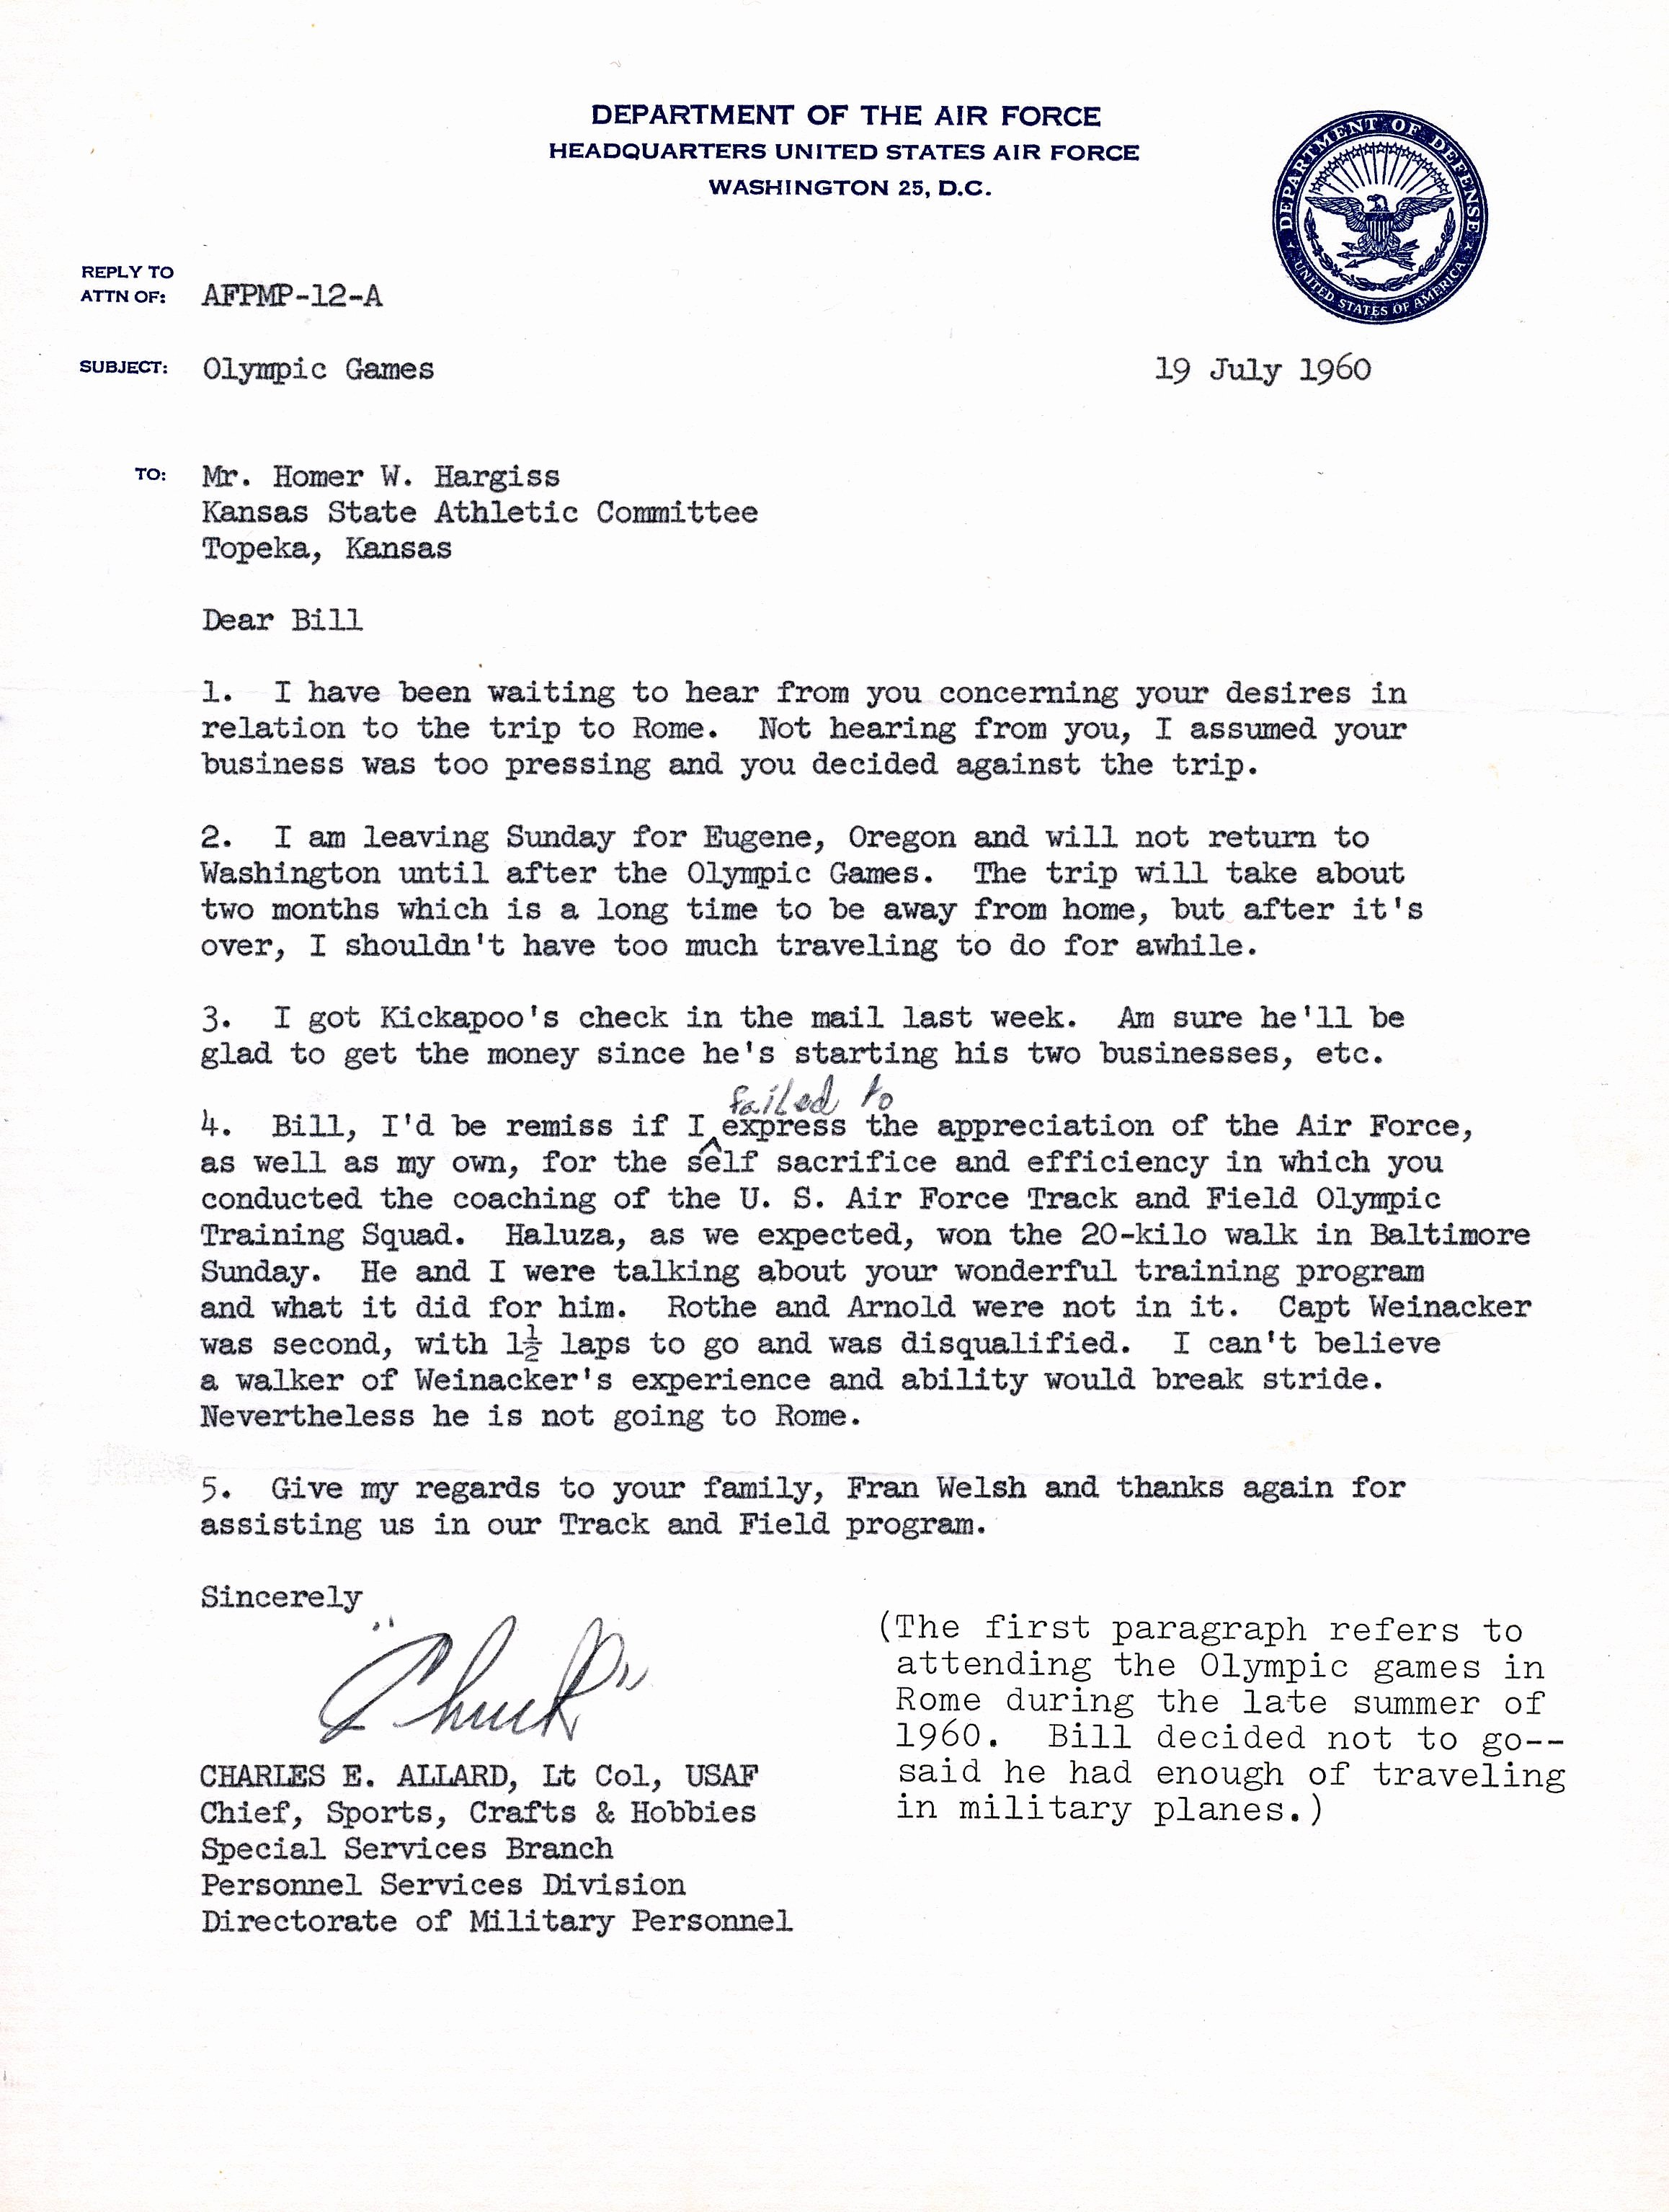 Letter Of Appreciation Template New Letter Of Appreciation From Usaf to Bill Hargiss 1960